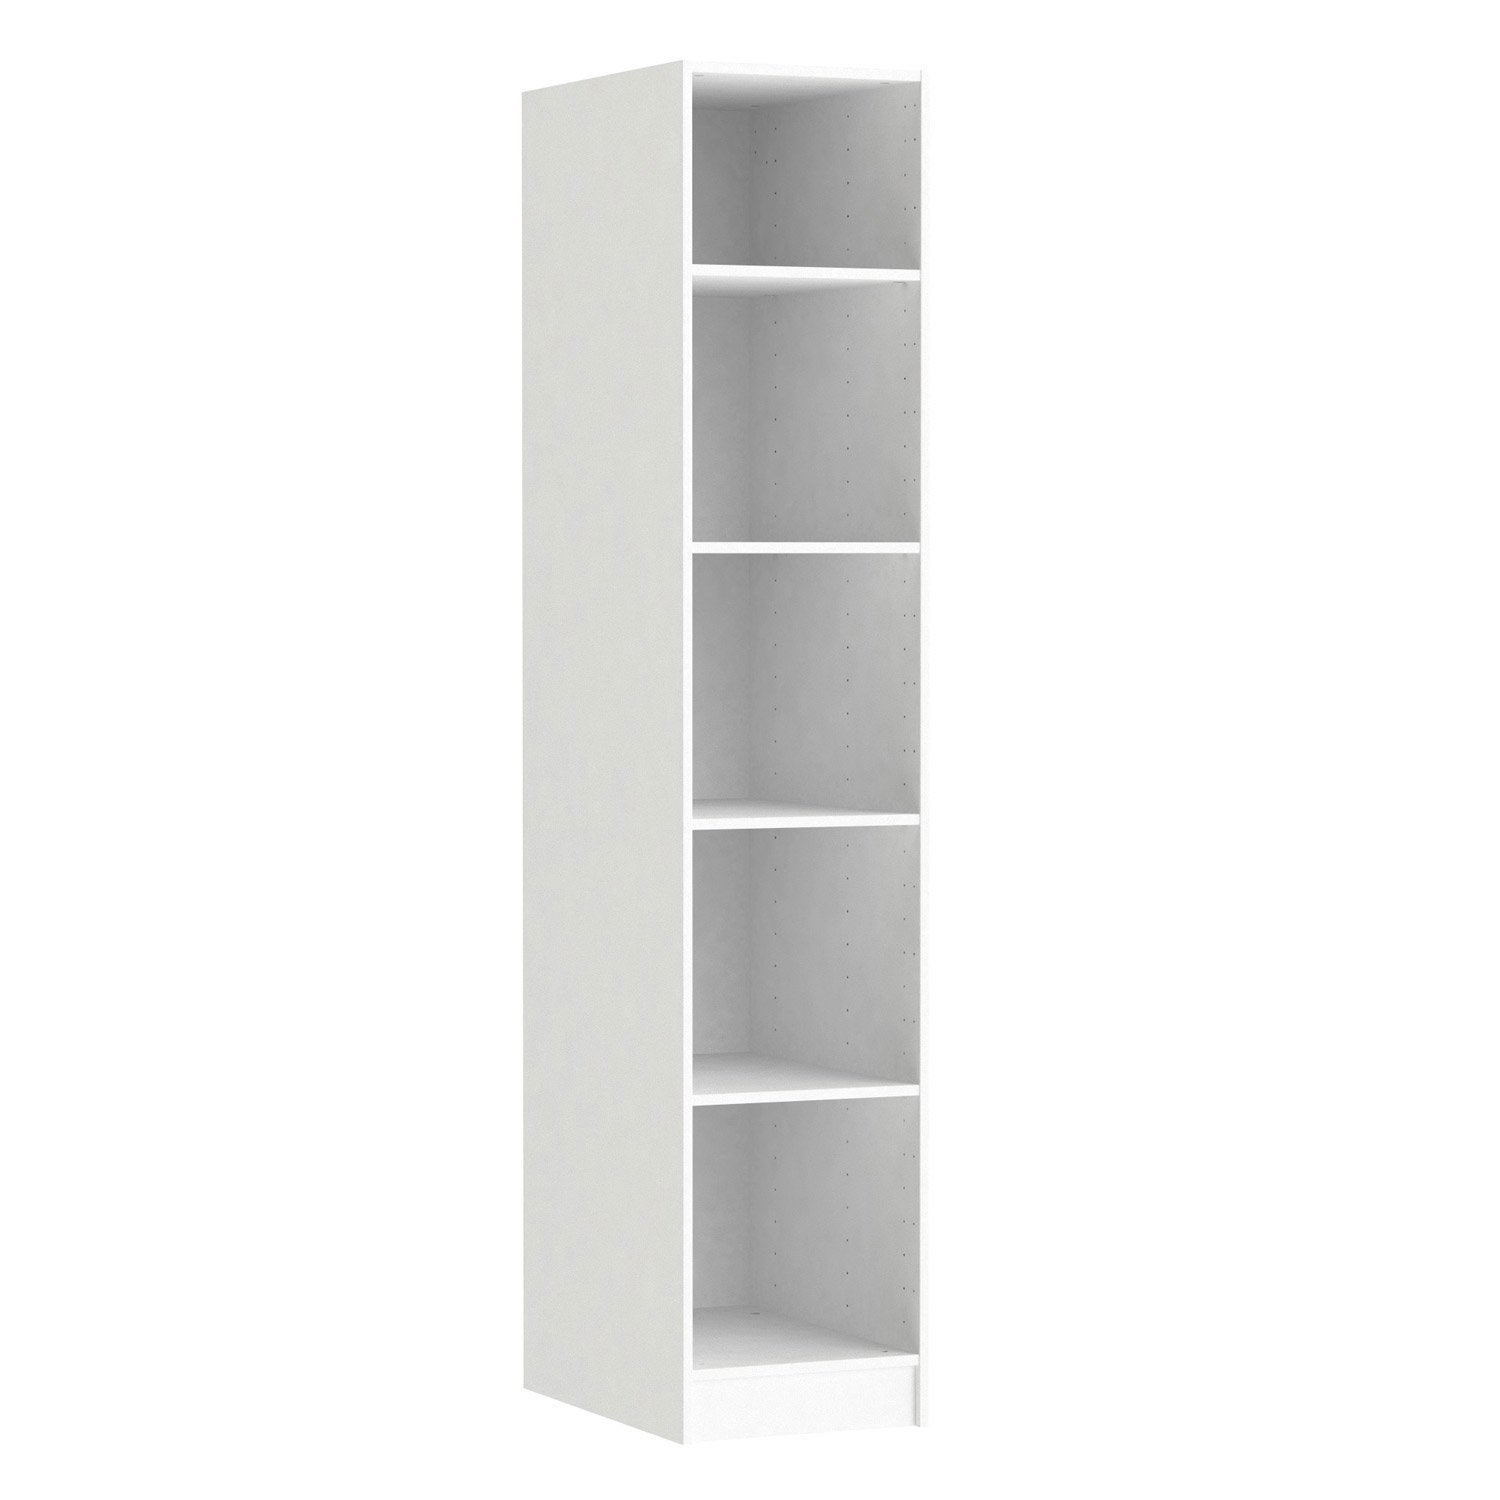 caisson spaceo home 200 x 40 x 60 cm blanc leroy merlin. Black Bedroom Furniture Sets. Home Design Ideas